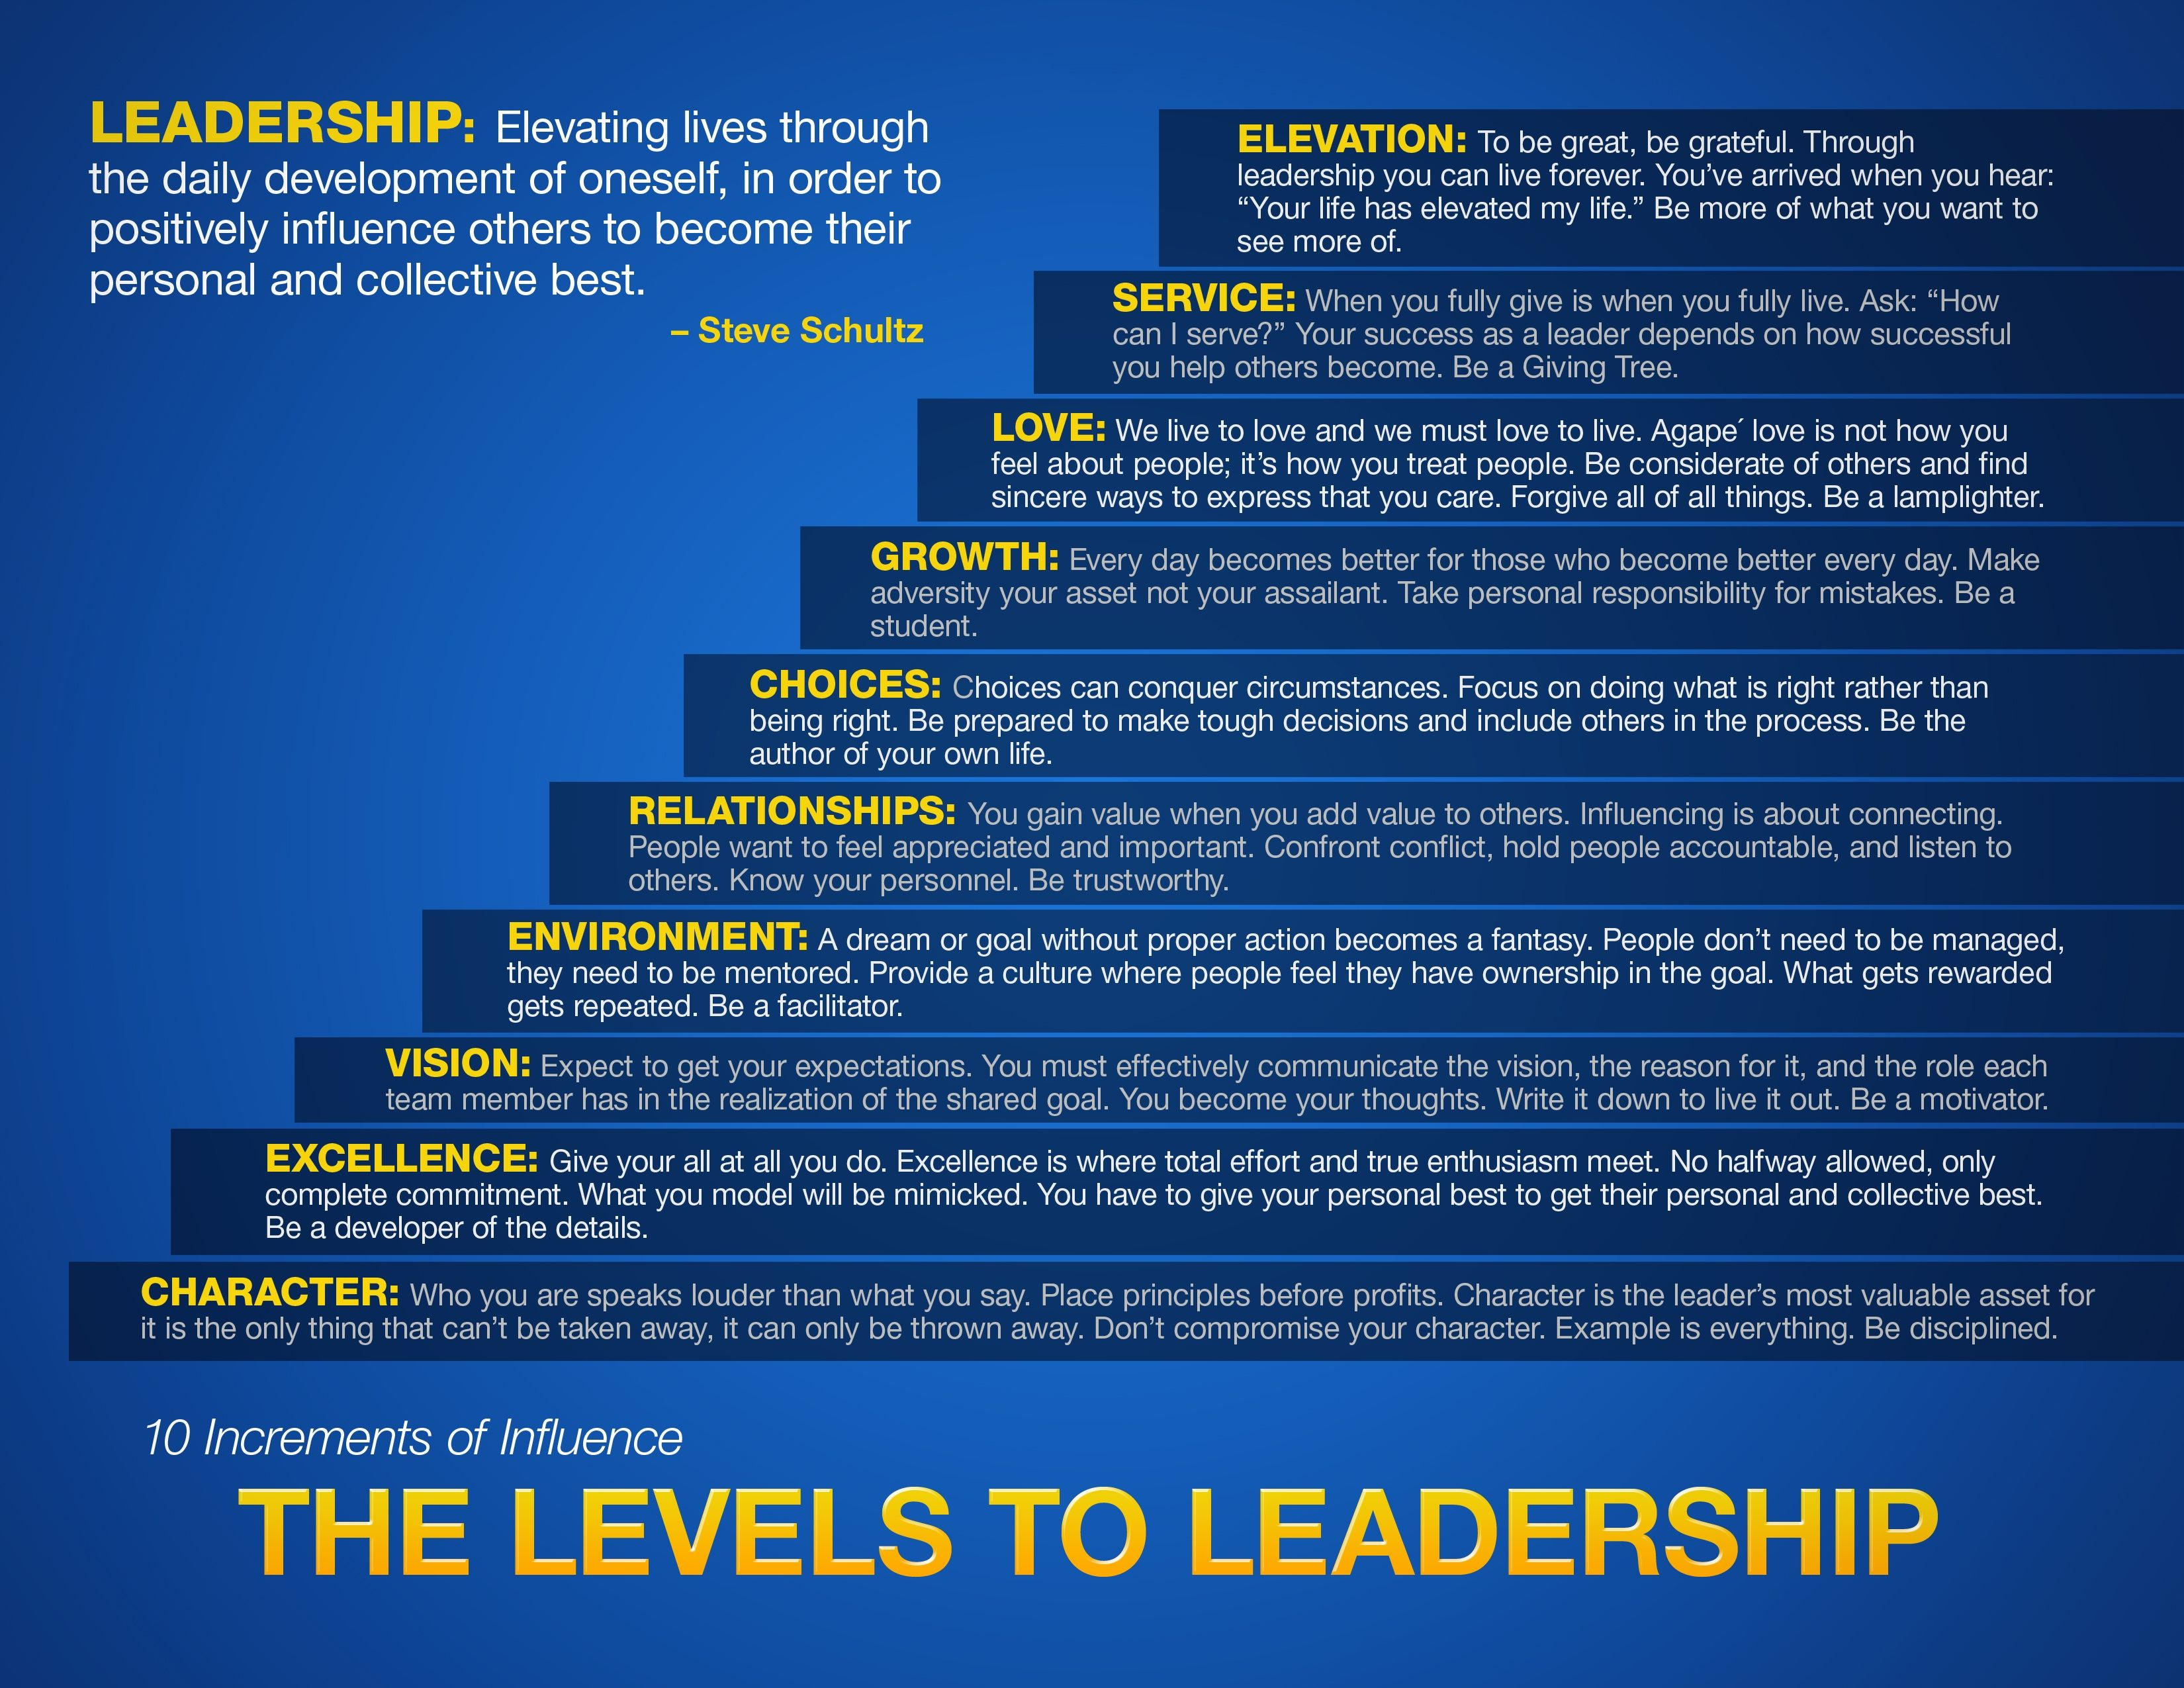 Become the leader of your own life 85